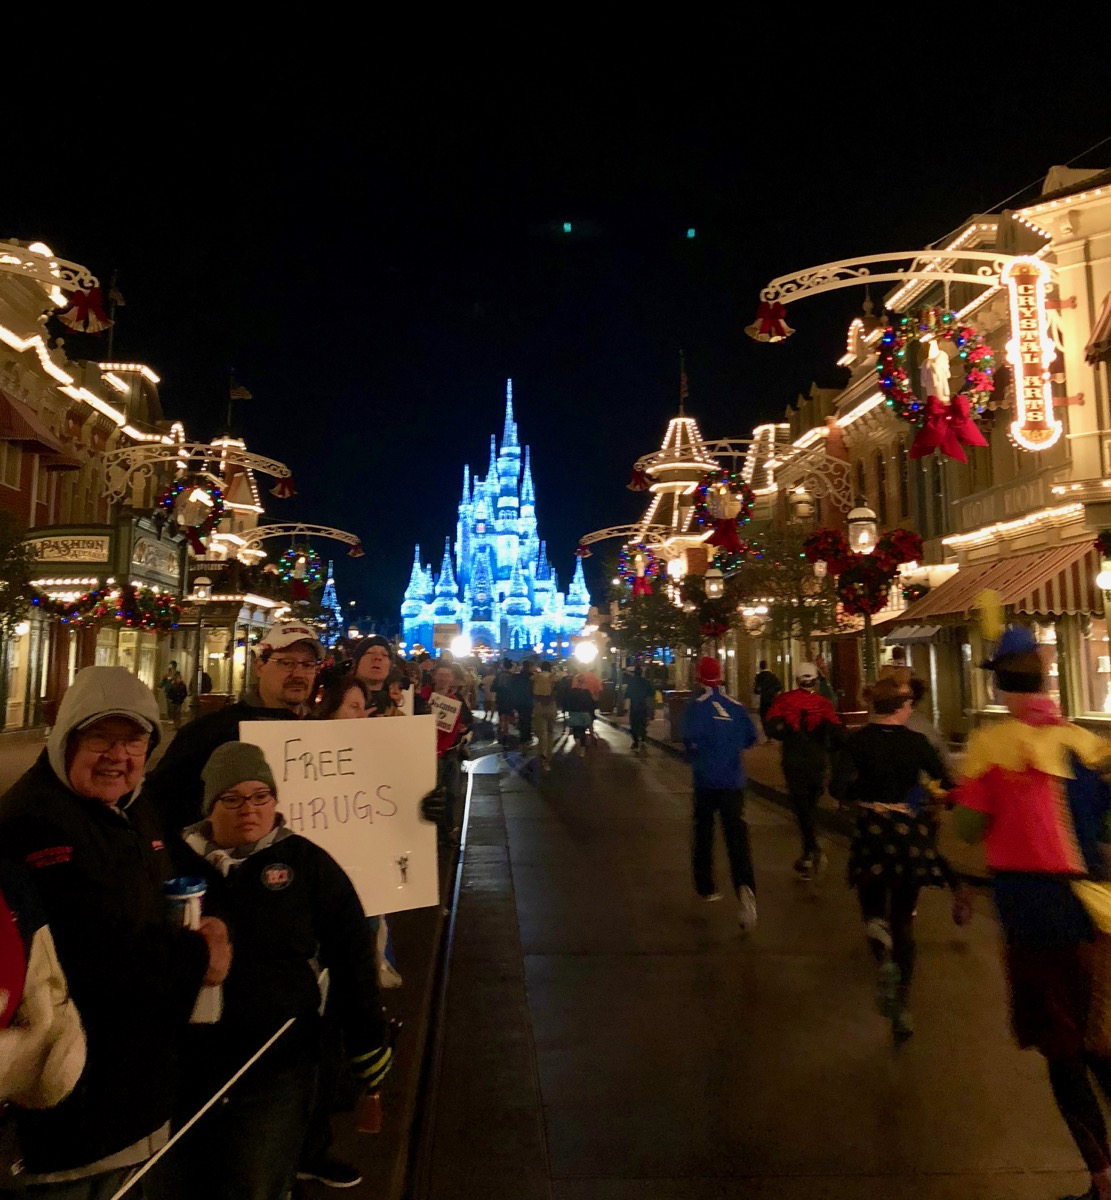 Cinderella's Castle and Main Street USA